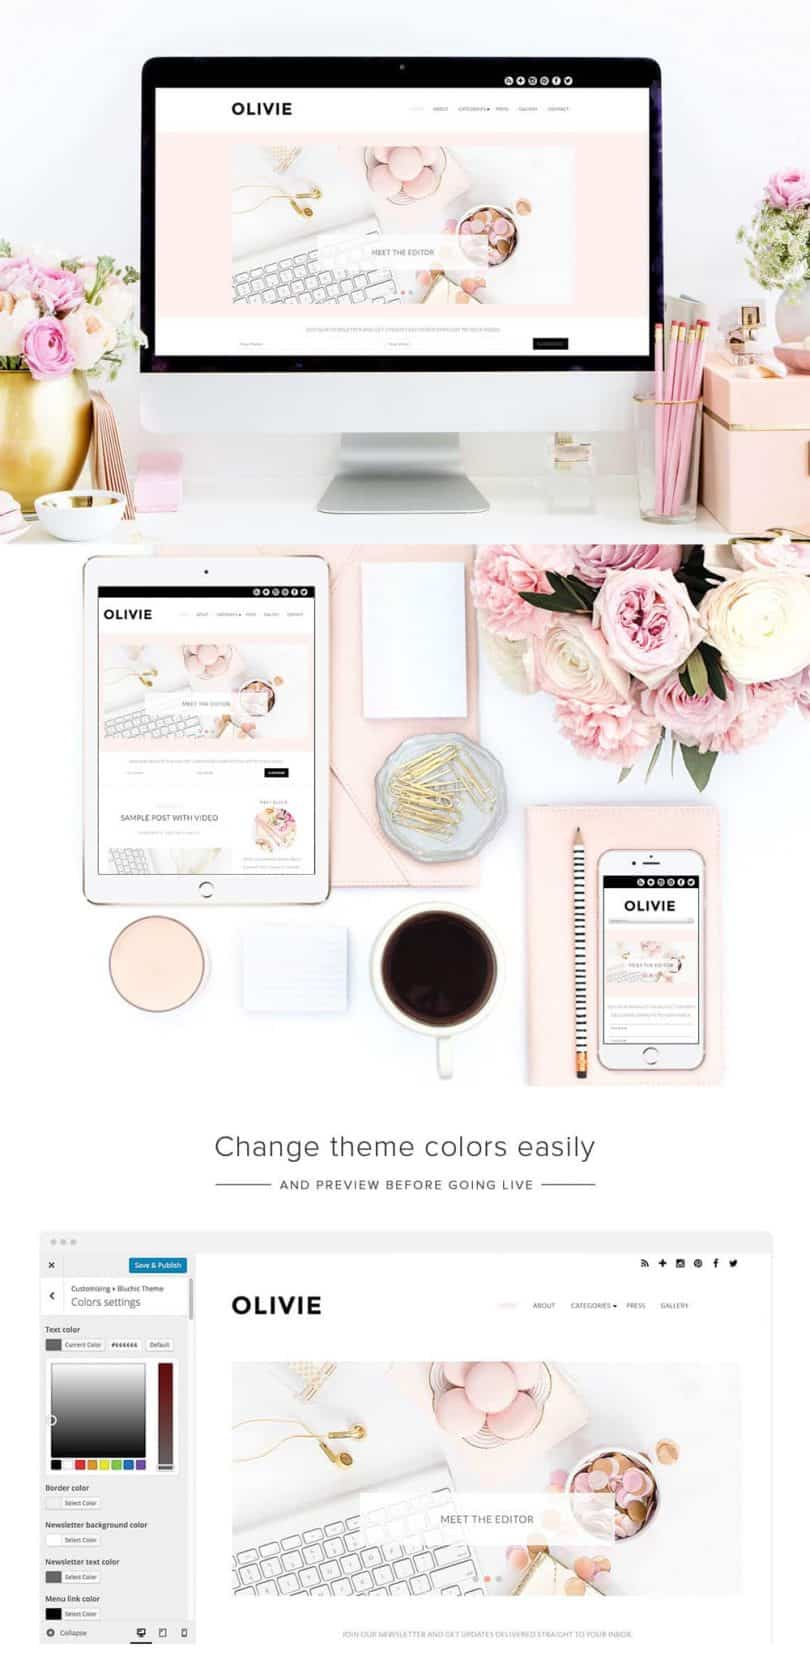 Best WordPress themes for Fashion and Beauty Bloggers